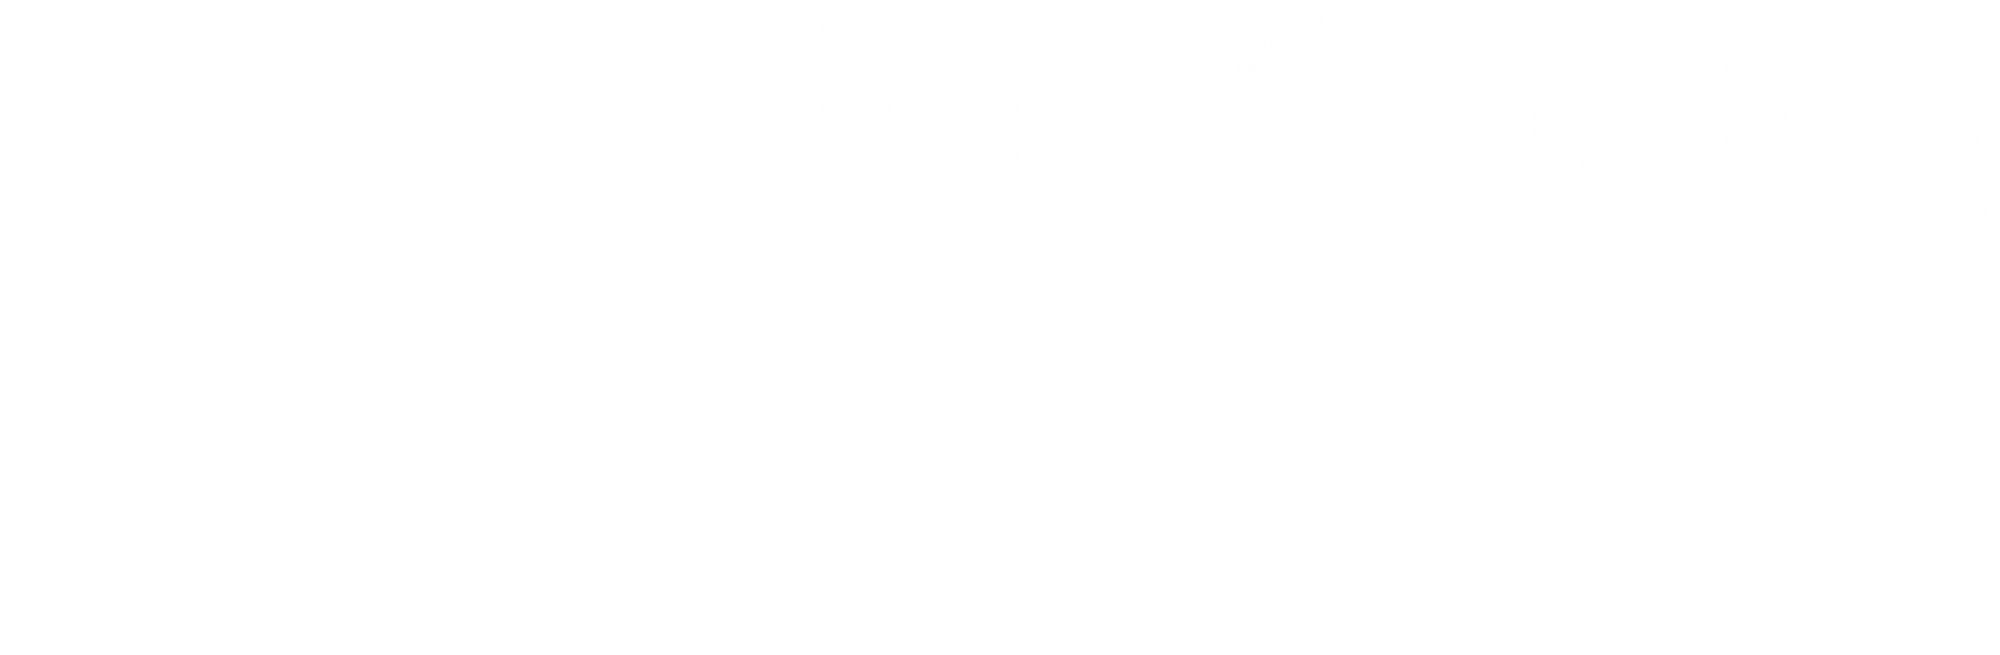 Capital Cigar Lounge Logo